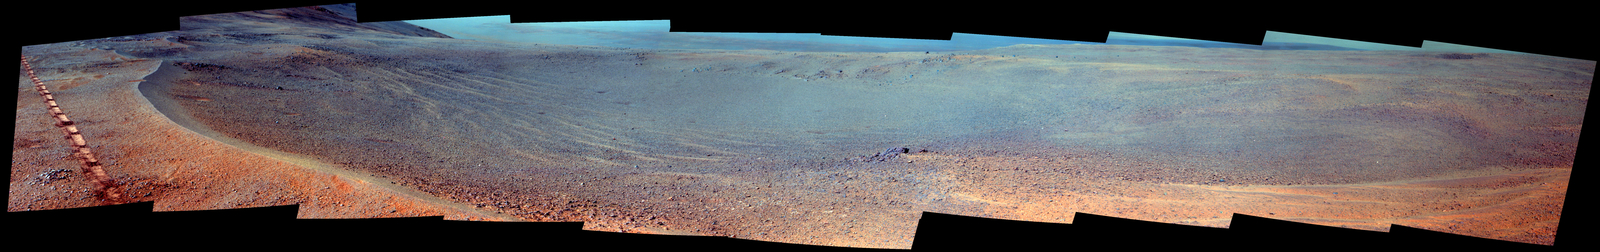 "The Pancam on NASA's Opportunity Mars rover imaged this small, relatively fresh crater in April 2017, during the 45th anniversary of the Apollo 16 mission to the moon. The rover team chose to call it ""Orion Crater,"" after the Apollo 16 lunar module. The scene is presented here in enhanced color."